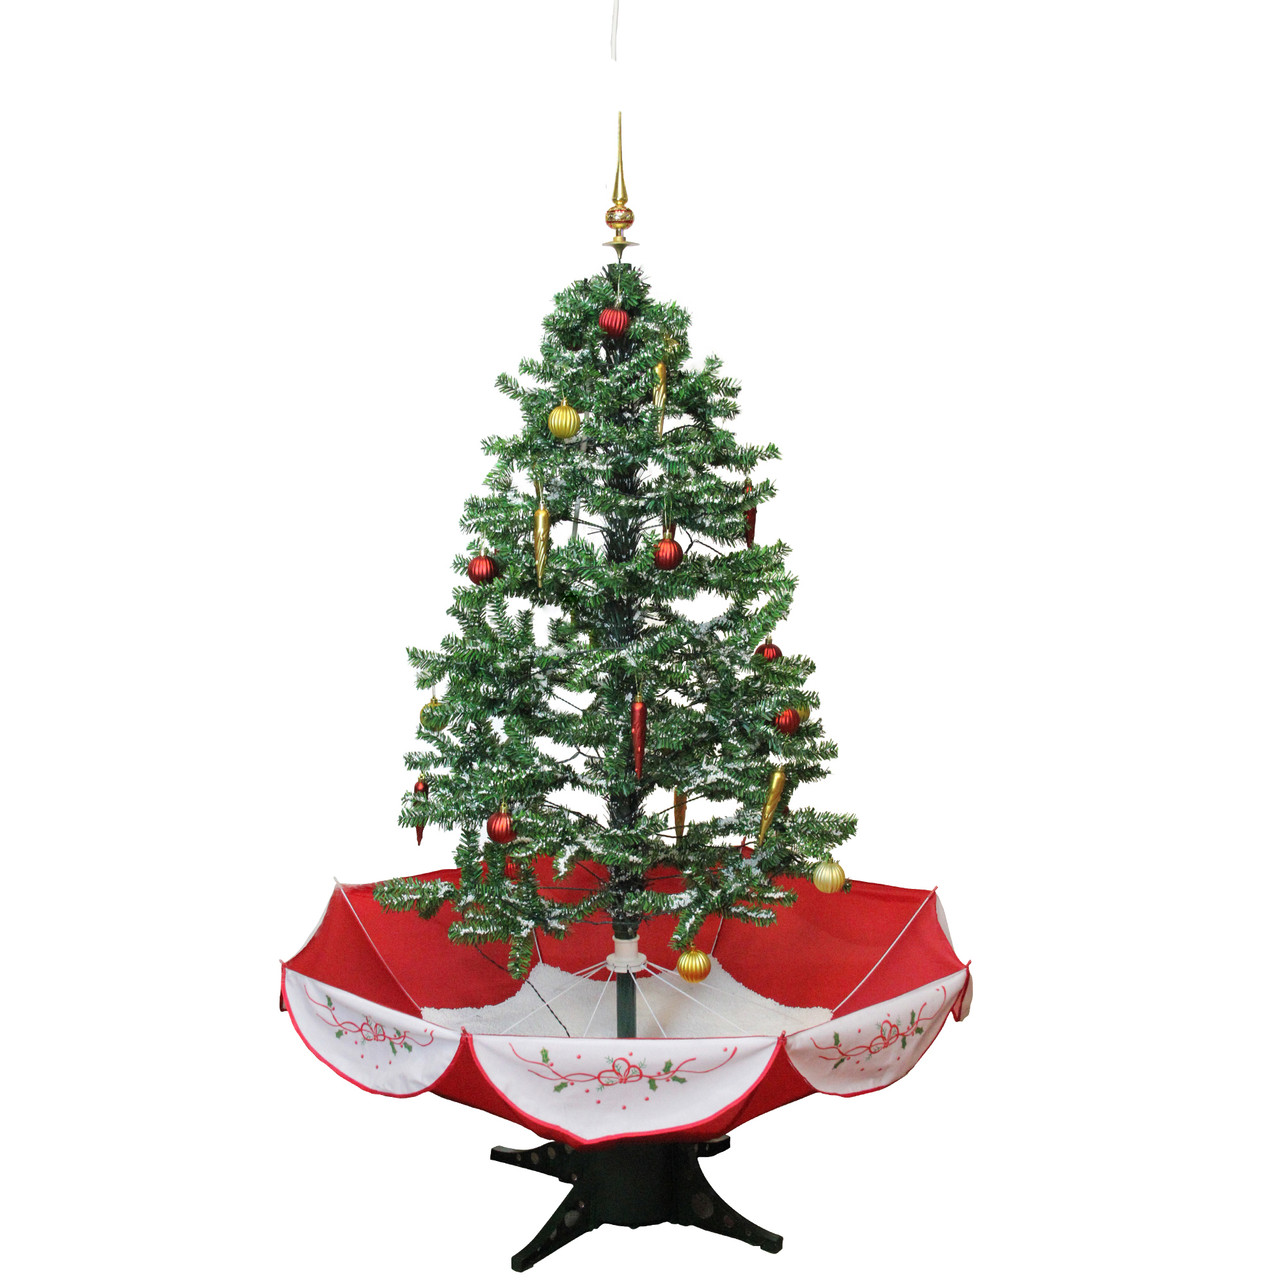 45 pre lit musical snowing artificial christmas tree with umbrella base blue led - Musical Christmas Tree Lights